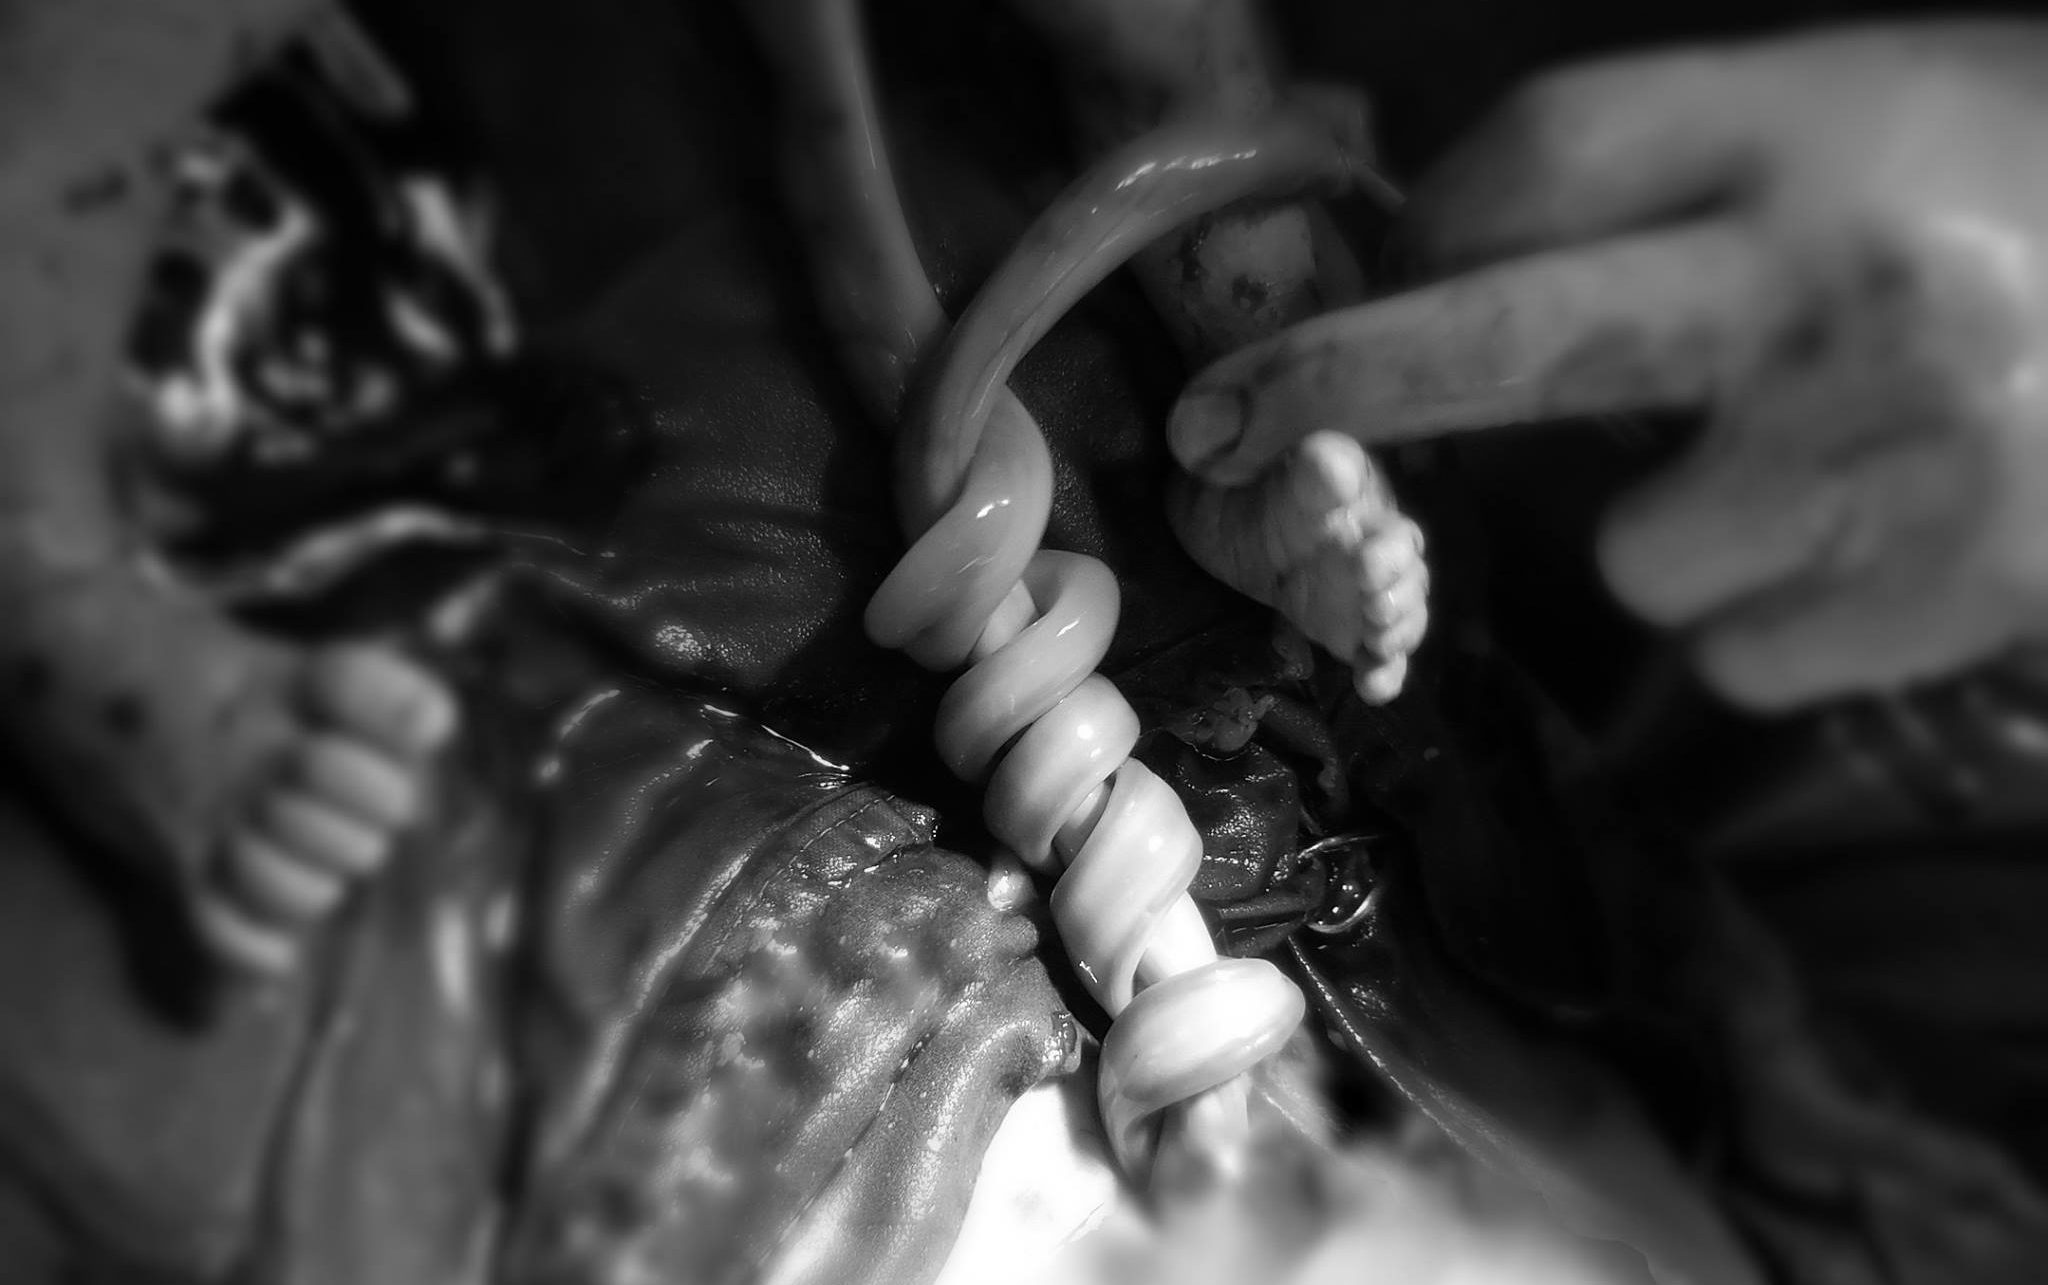 Doctor captures live image of twins with entangled umbilical cord